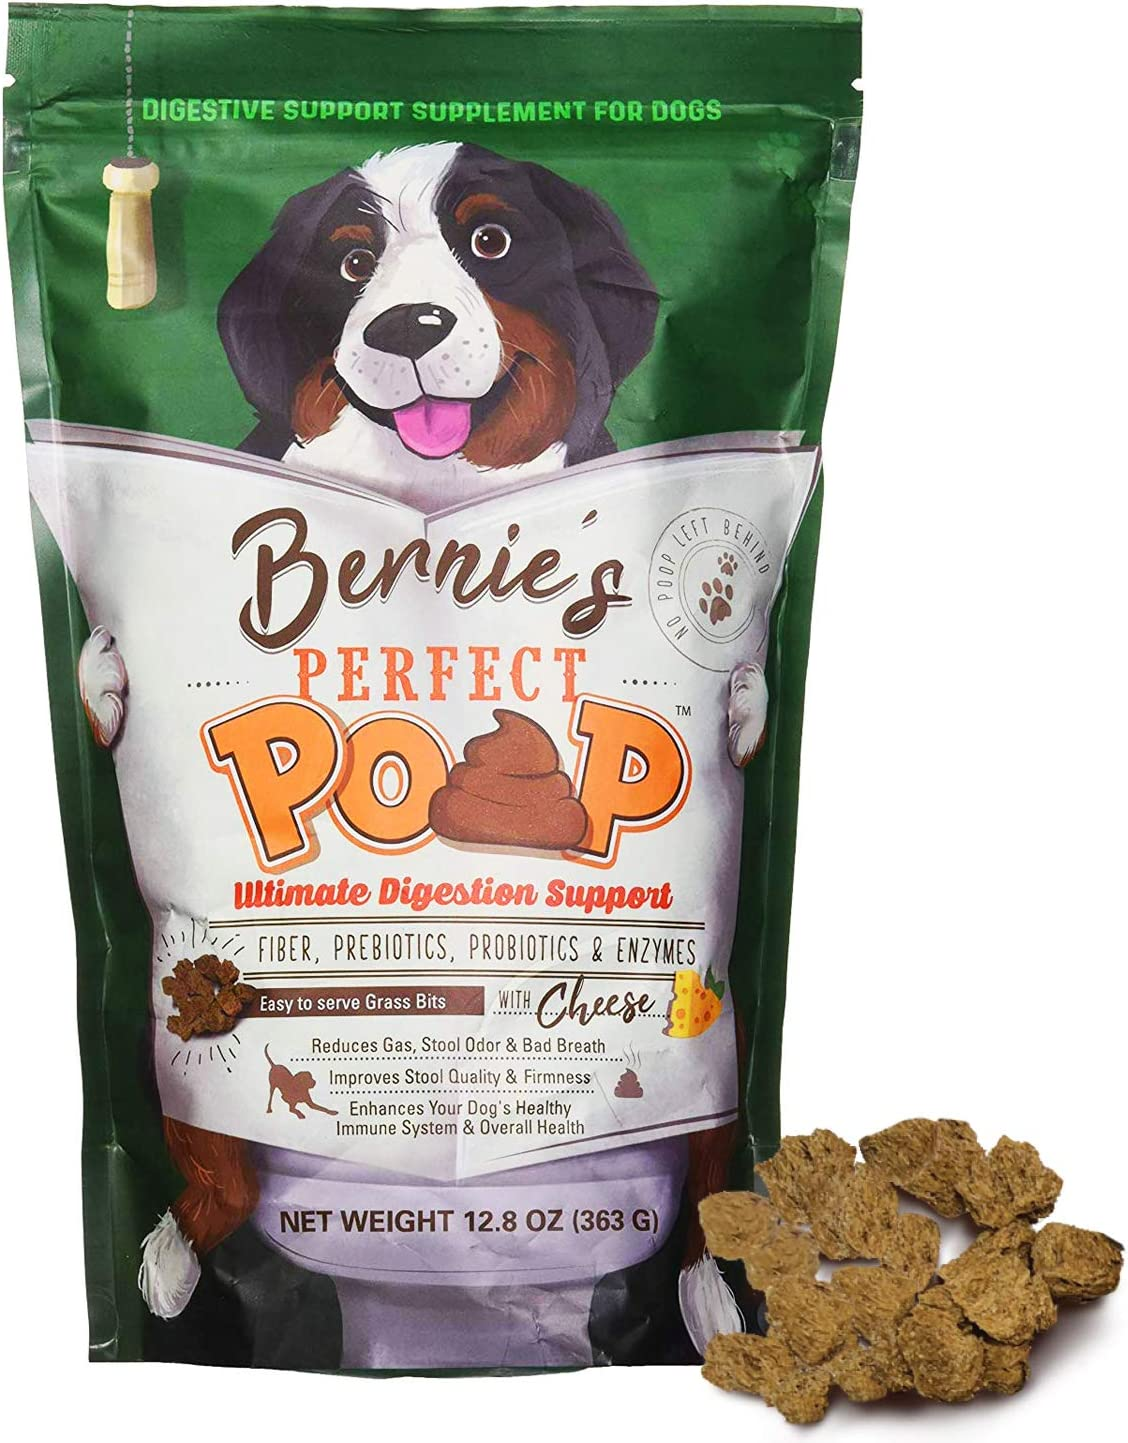 BERNIE'S PERFECT POOP Digestion & General Health Supplement for Dogs: Fiber, Prebiotics, Probiotics & Enzymes Relieve Digestive Conditions, Optimize Stool, and Improve Health